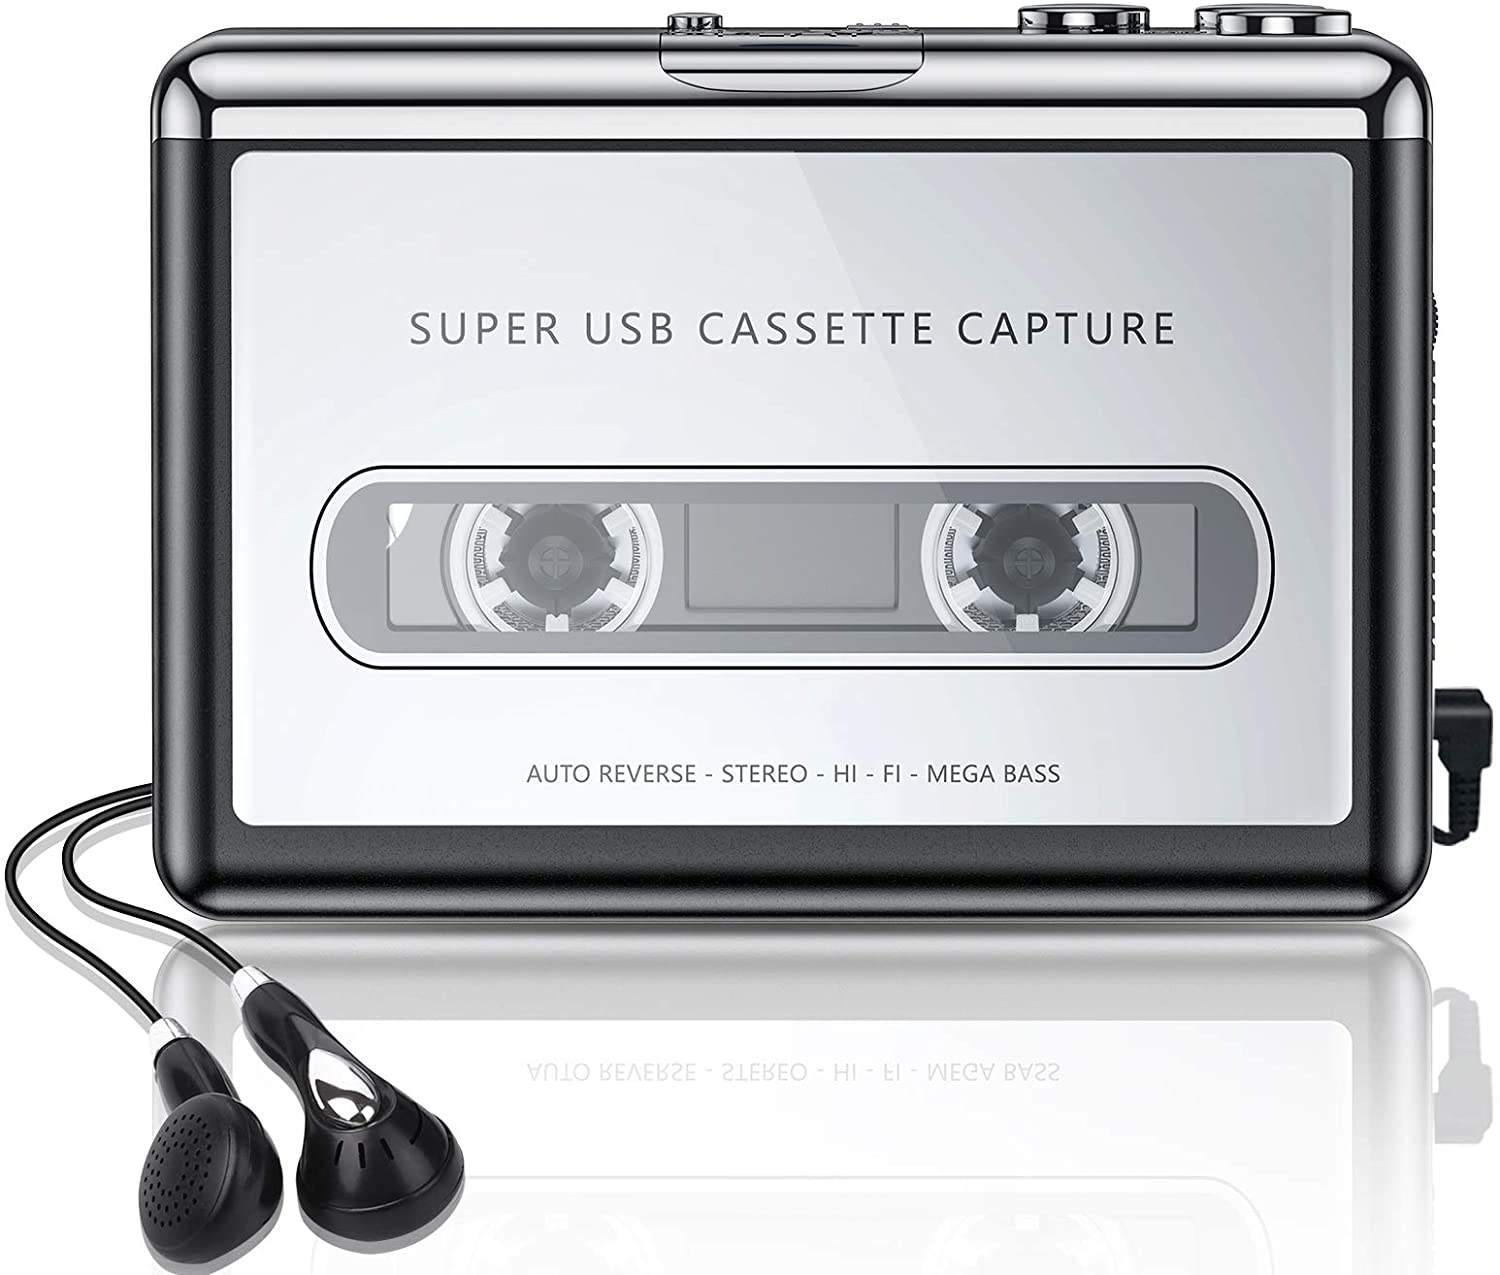 2020 TOP selling Walkman Cassette Tape To MP3 CD Converter USB,Portable Cassette Tape Converter Captures MP3 Audio Music